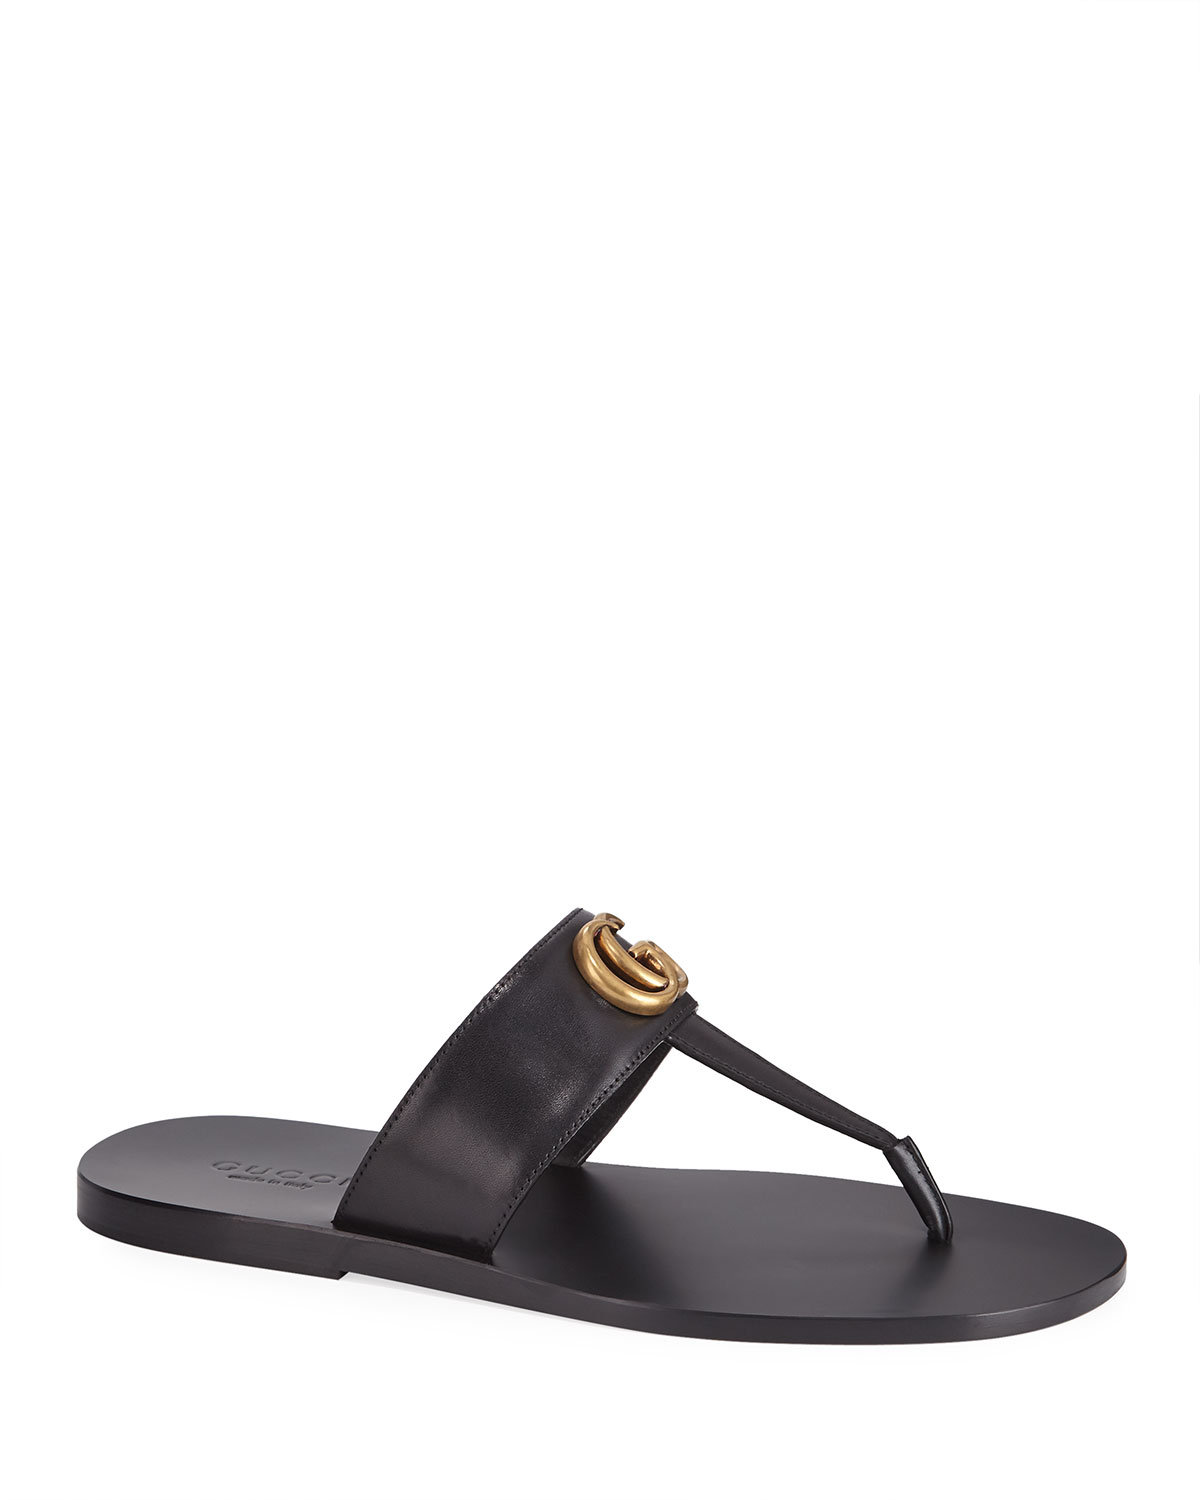 f03dbb547 Gucci Men s GG-Stud Leather Thong Sandals